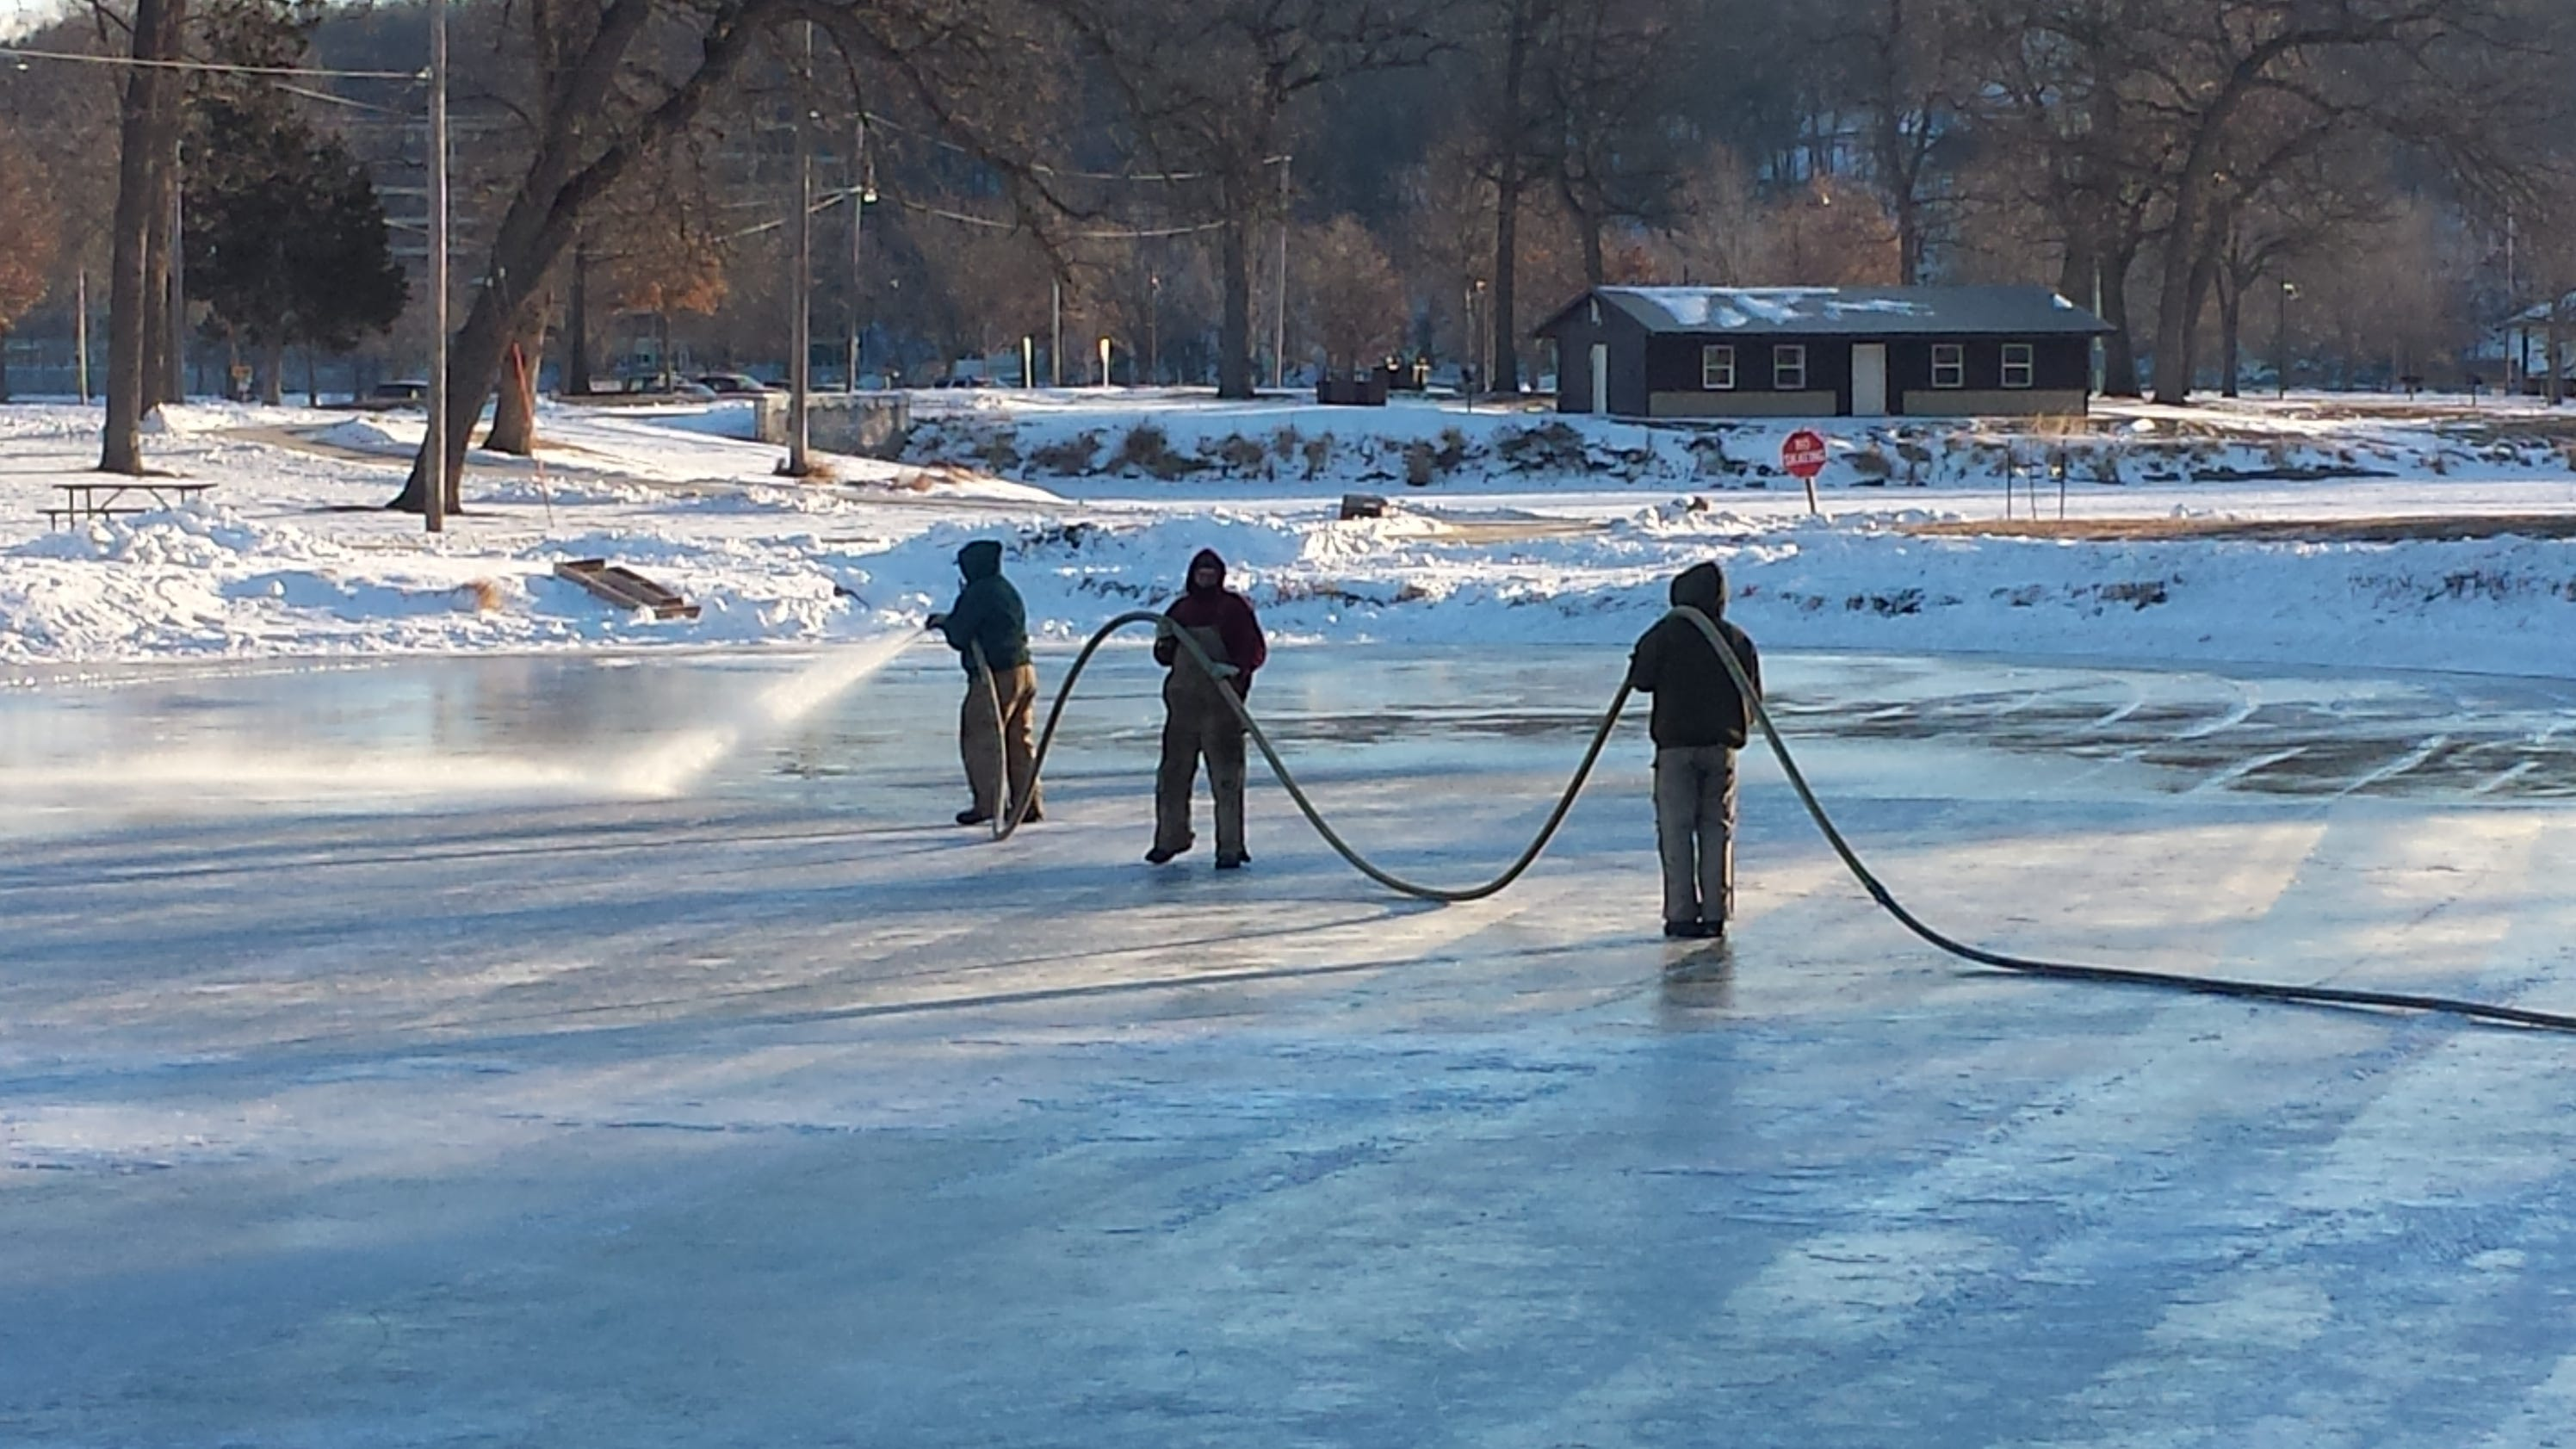 ic ice skating areas now open